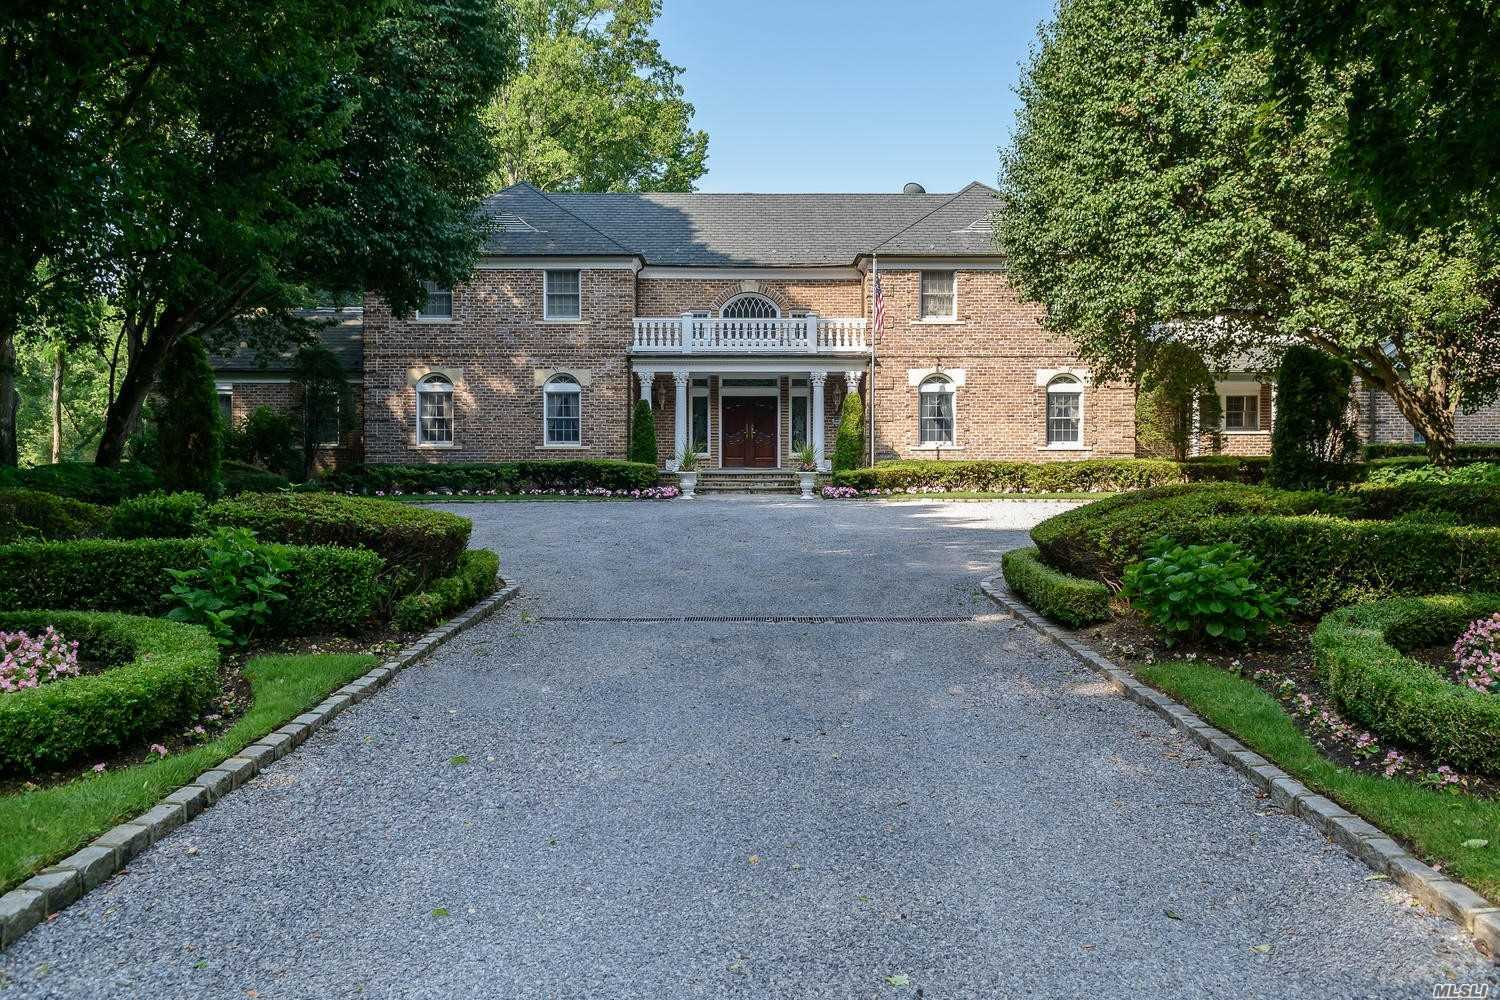 True Estate Located On 10+/- Acres With Rolling Lawns, Mature Trees And Magnificent Landscaping. Very Private. Beautiful Pool And Surround. Wonderful Flowing Pond With 2 Fountains. A Refuge Haven From The World. Taxes Being Grieved. Generator.